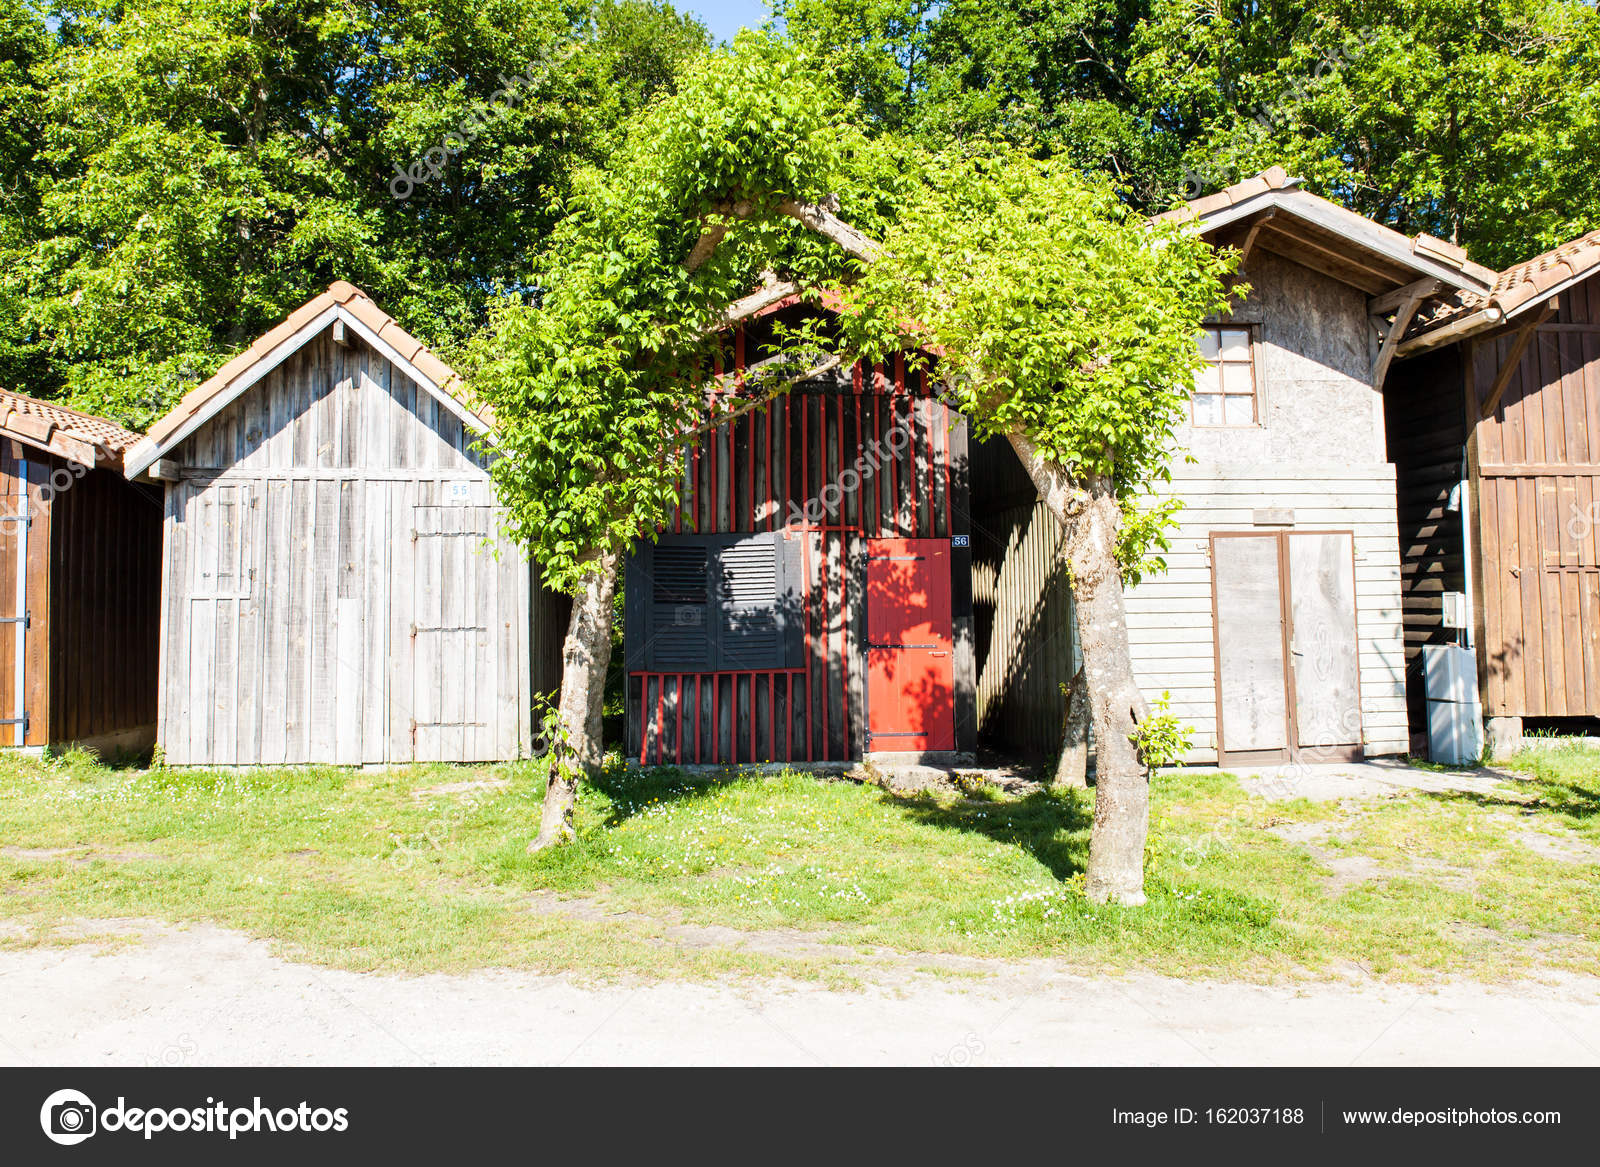 colored wooden houses near trees — Stock Photo © Chretien #162037188